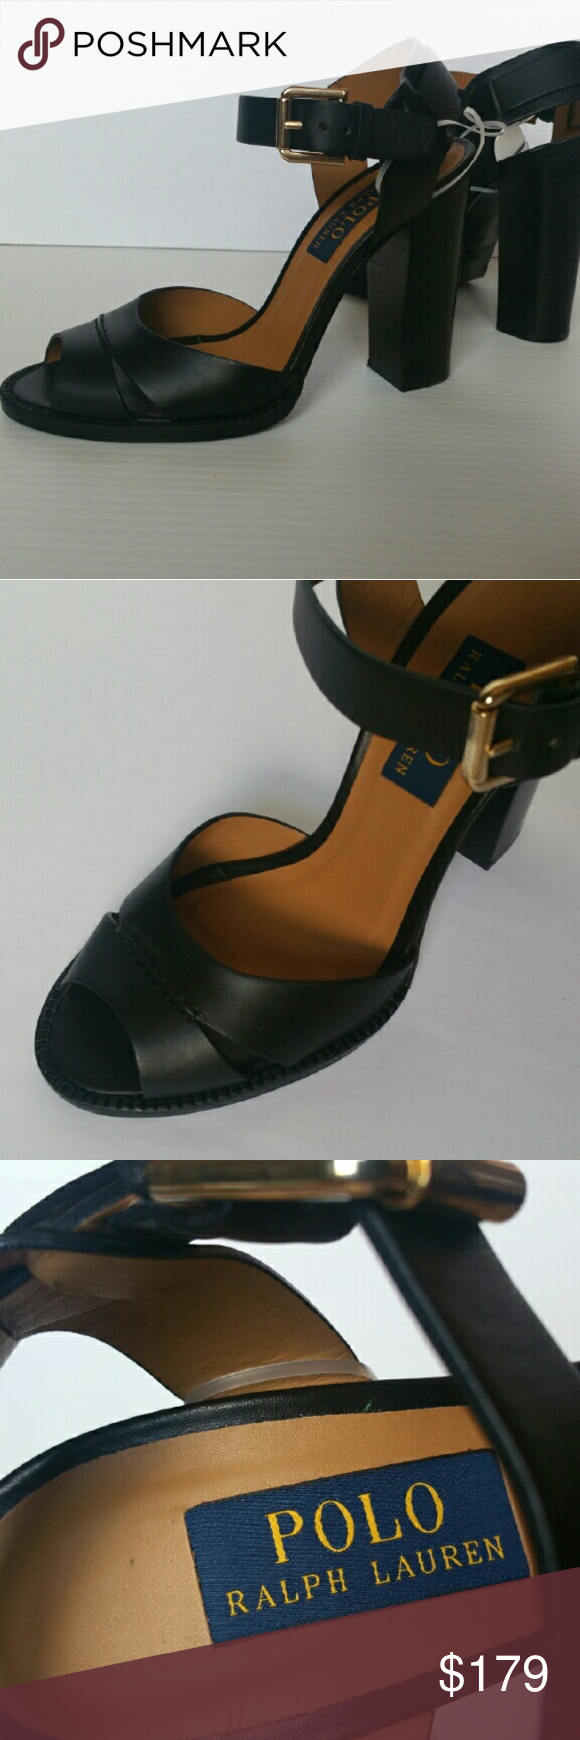 5bef1e7b9c1 New Polo Ralph Lauren leather black Norene Sandals Brand new Polo ...